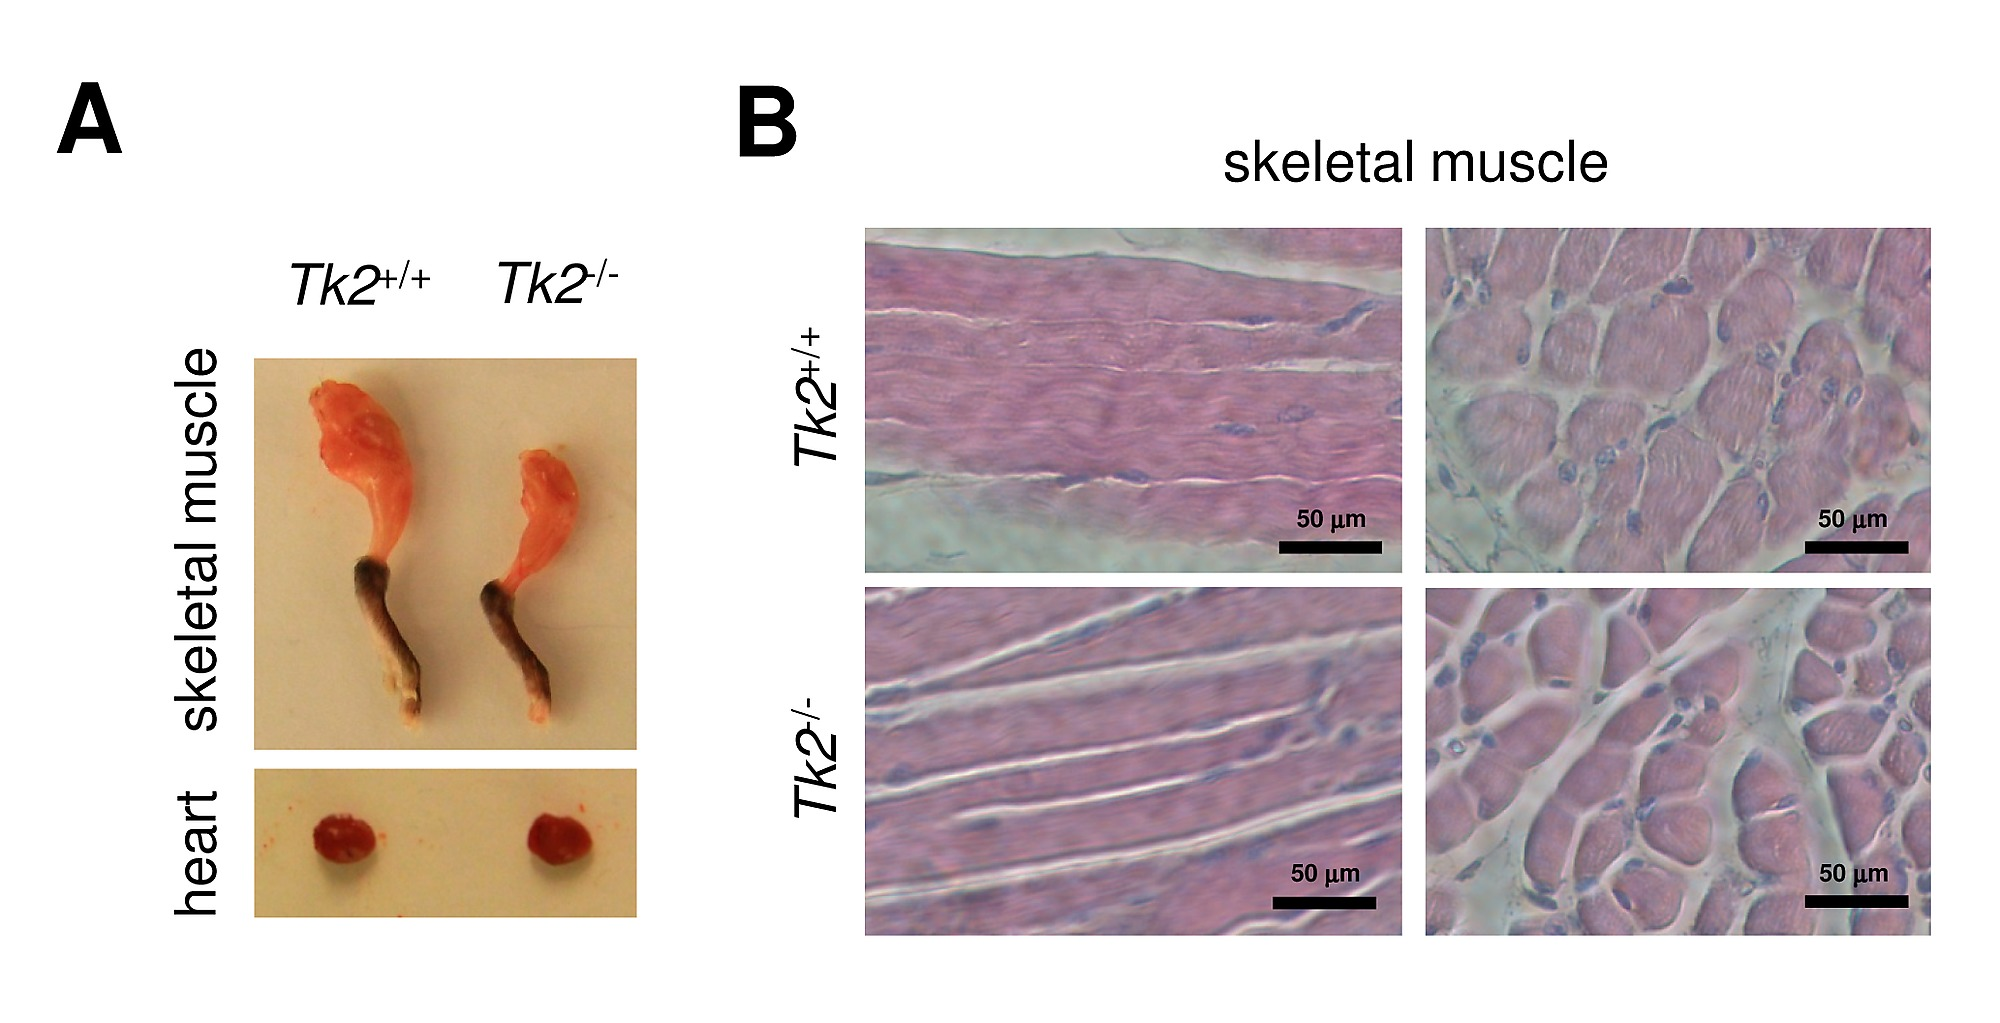 Gene Expression Deregulation In Postnatal Skeletal Muscle Of Tk2